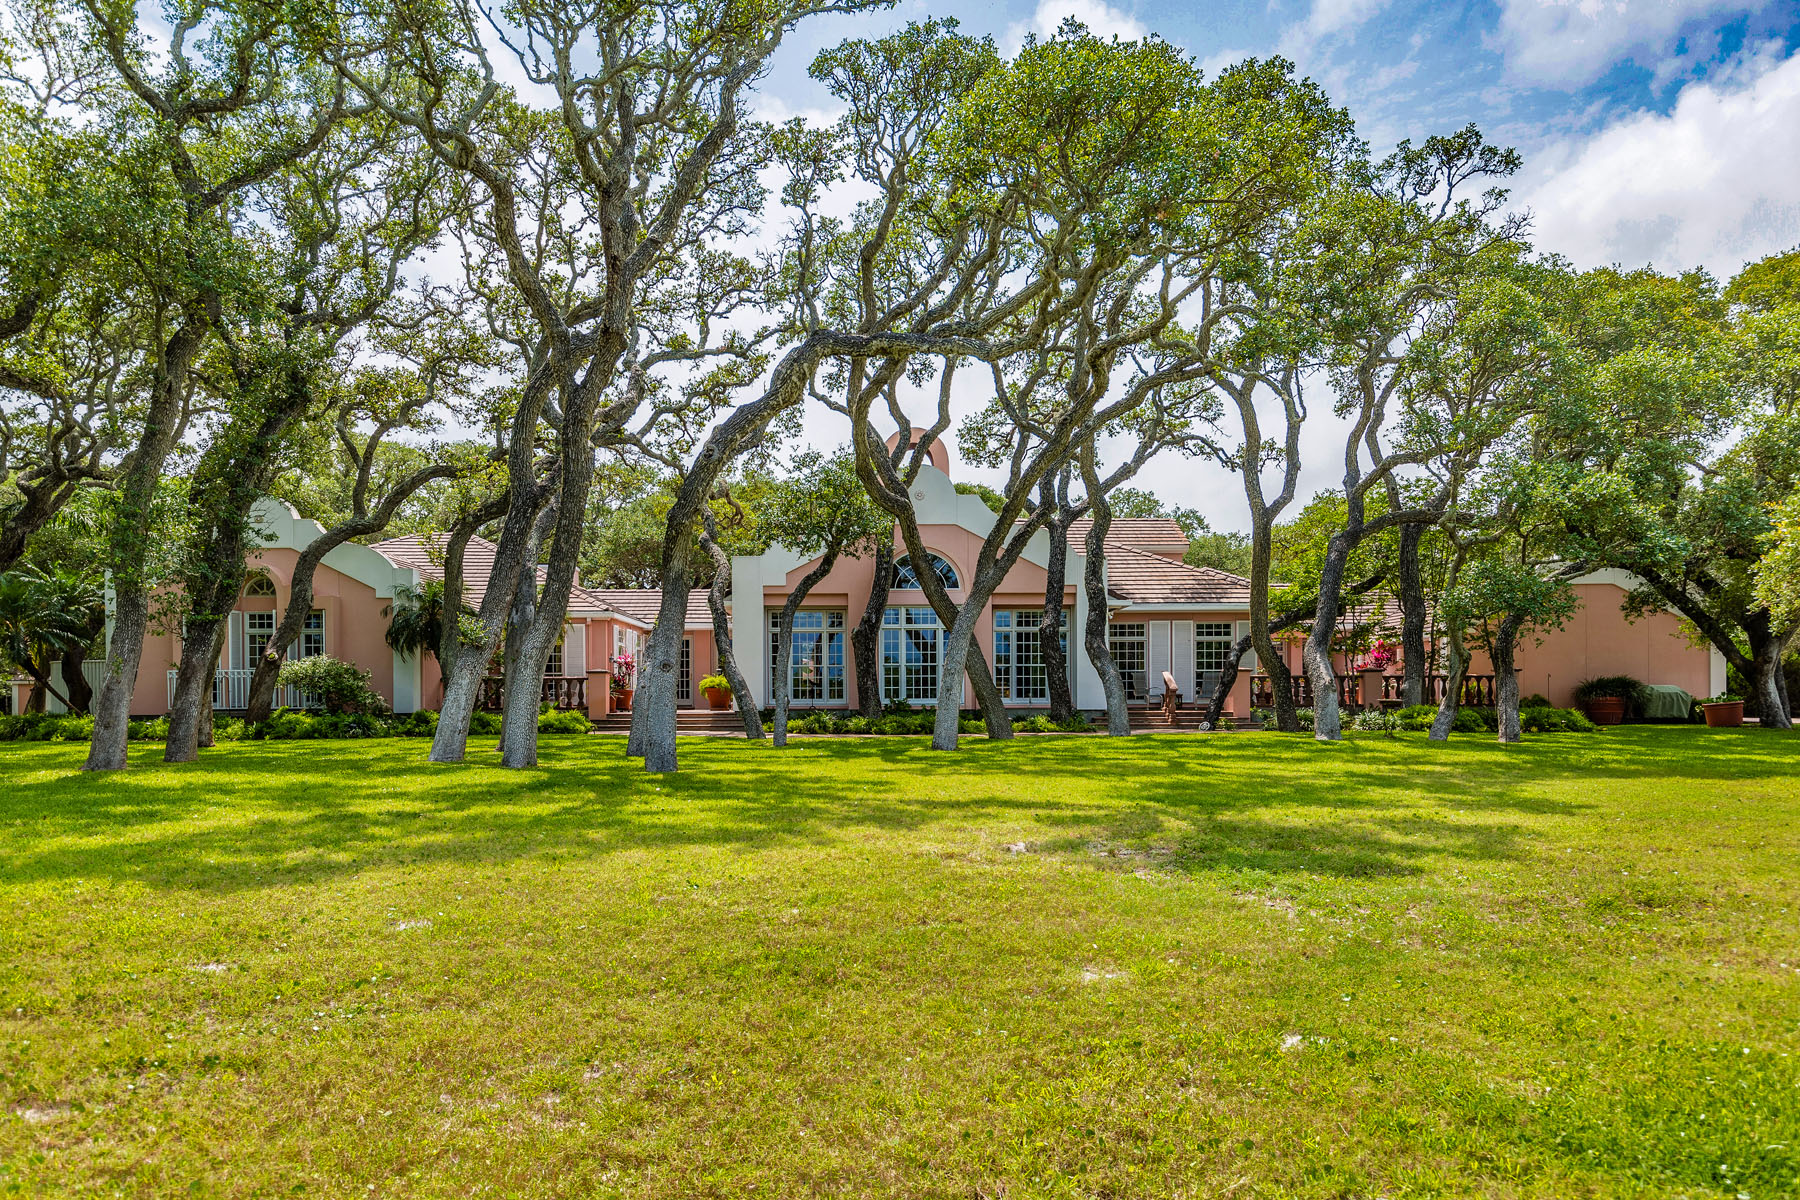 Single Family Home for Sale at Villa Maria Estate 2114 Lakeview Dr Rockport, Texas 78382 United States